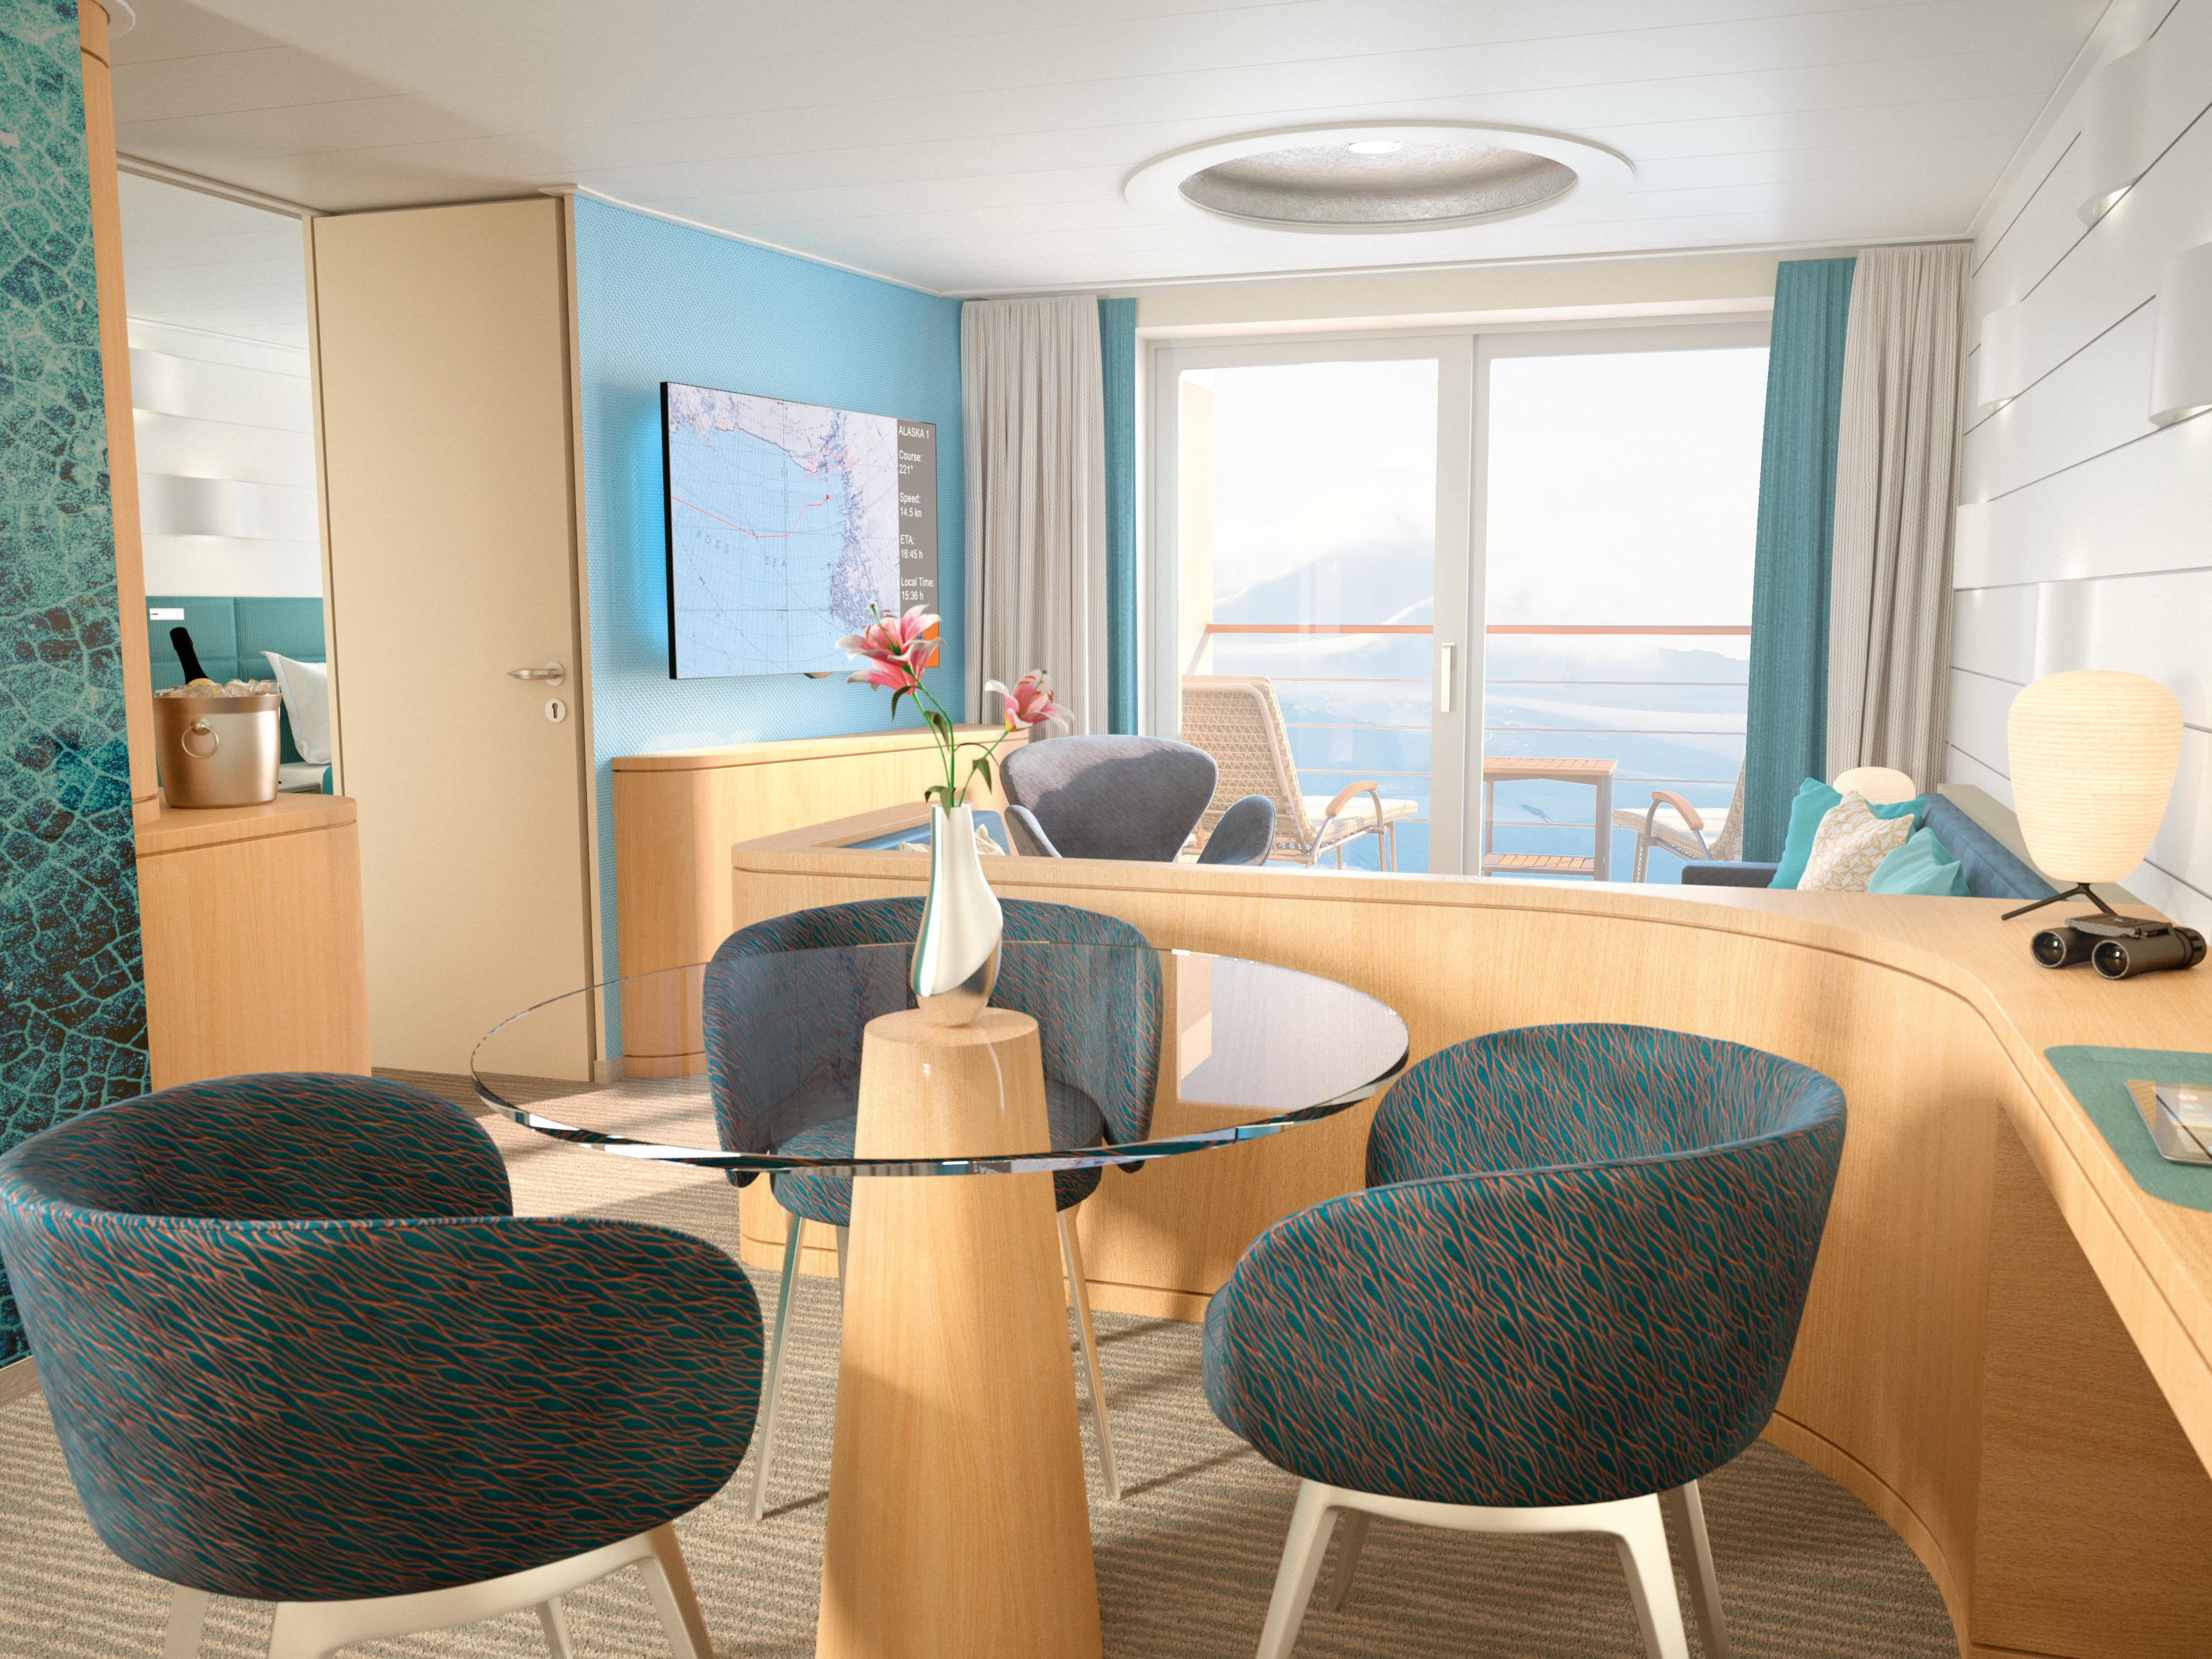 Germany-based luxury line Hapag-Lloyd Cruises is targeting English speakers with a luxurious new expedition ship called HANSEATIC inspiration. Debuting in late 2019, it'll sail to off-the-beaten-path destinations such as the Arctic, Antarctica and the Amazon River.